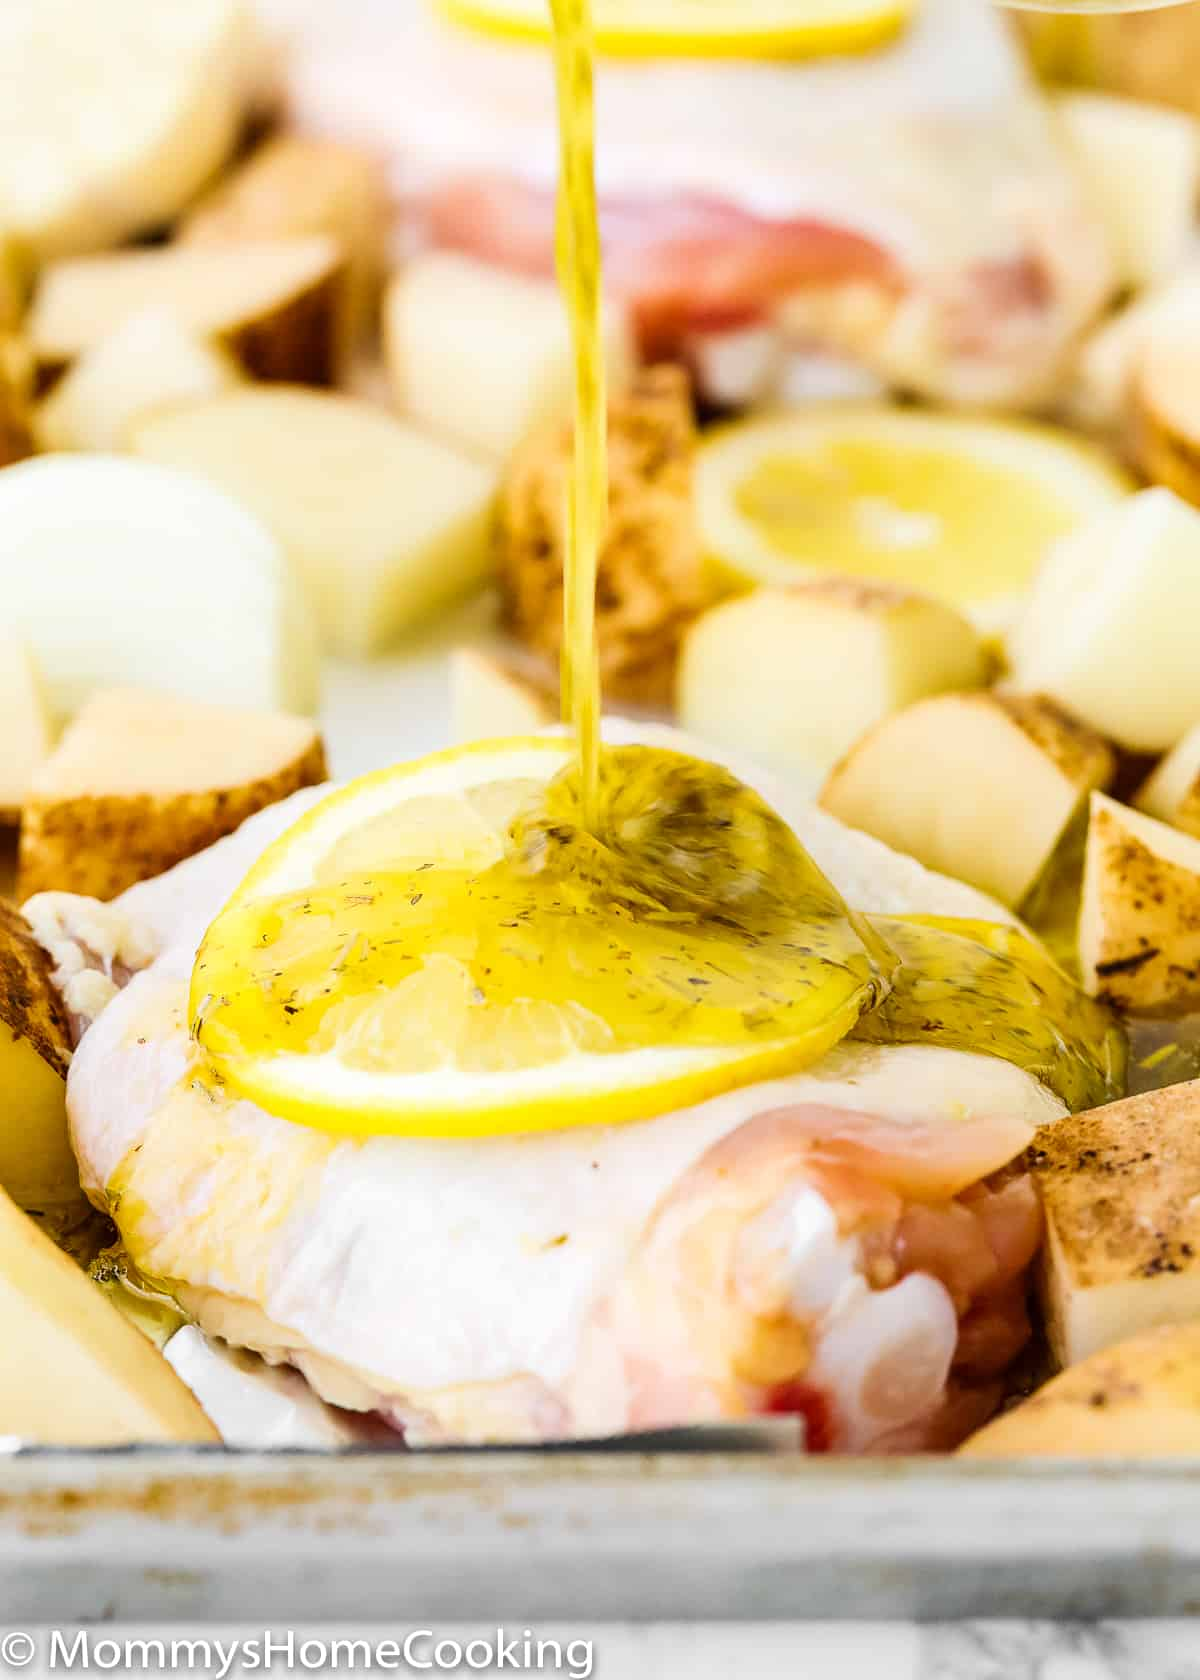 This Sheet Pan Lemon Garlic Roasted Chicken and Potatoes is incredibly simple, but seriously scrumptious! The chicken and potatoes are bathed in plenty of herbs and a delicious bright citrus sauce that will make your taste buds dance. The perfect answer to hectic weeknights. Whole 30 friendly. https://mommyshomecooking.com